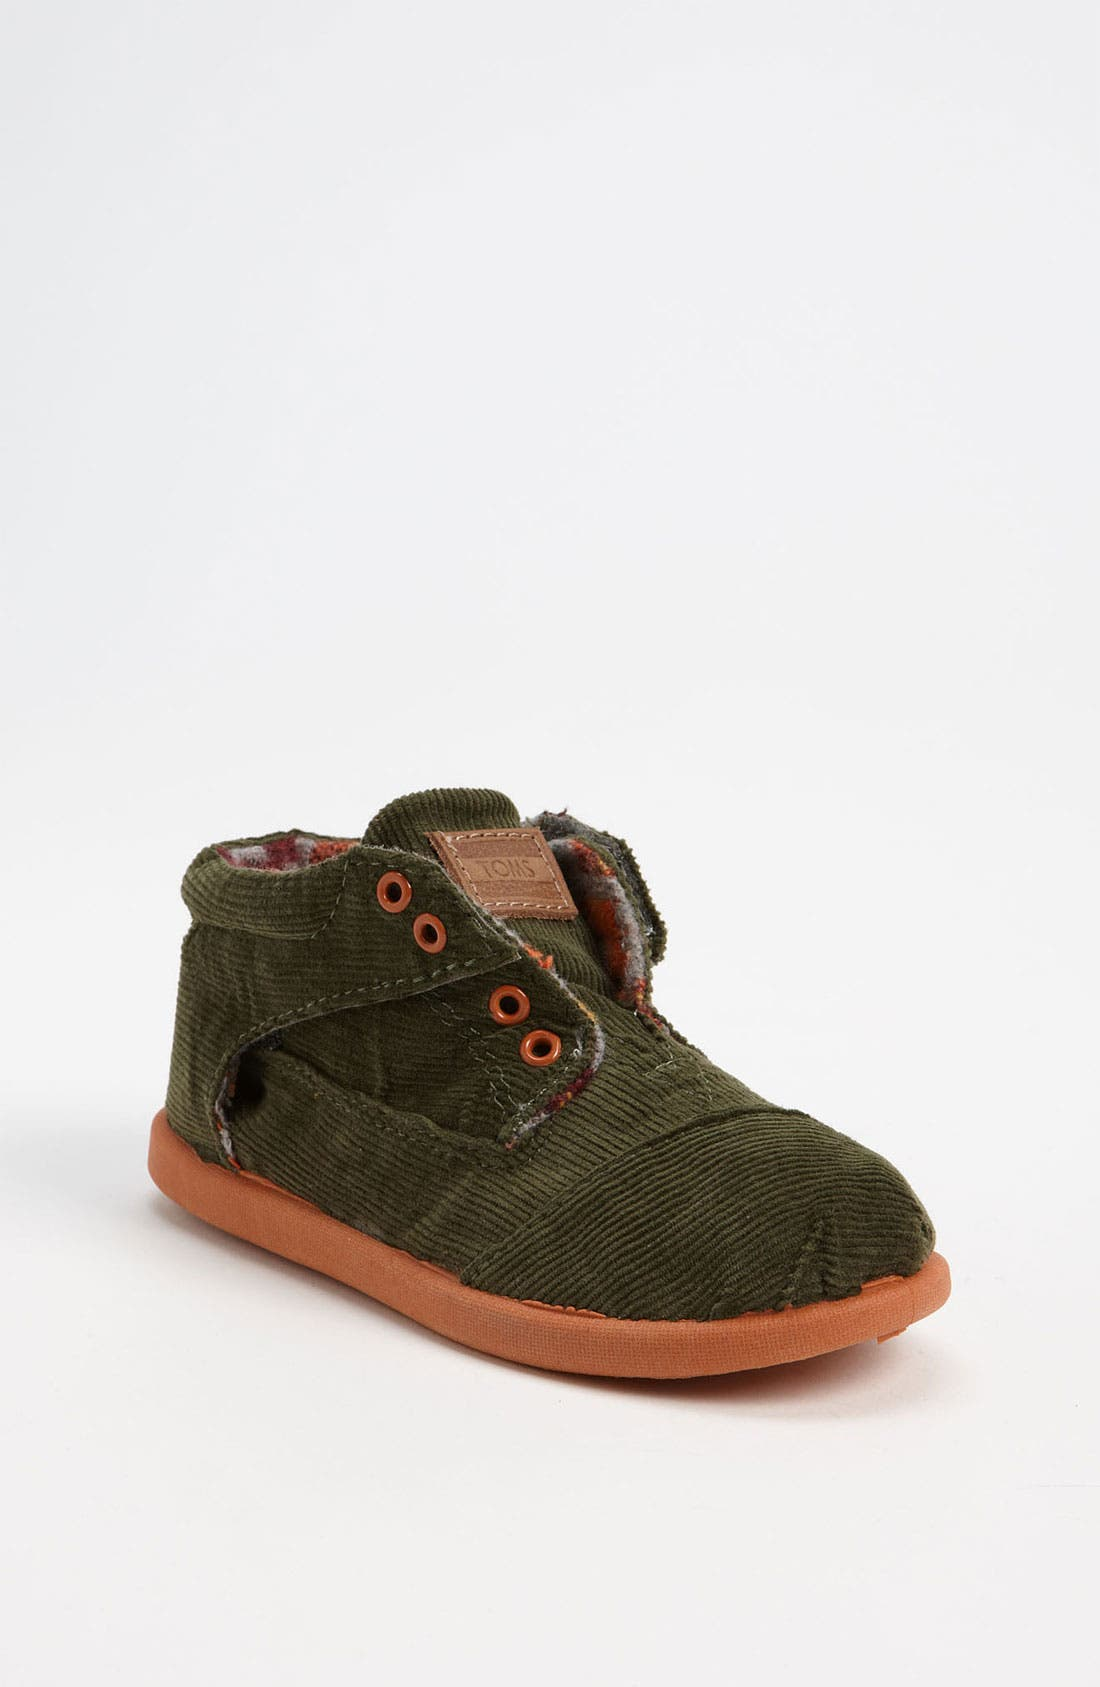 Main Image - TOMS 'Botas' Corduroy Boot (Baby, Walker & Toddler)